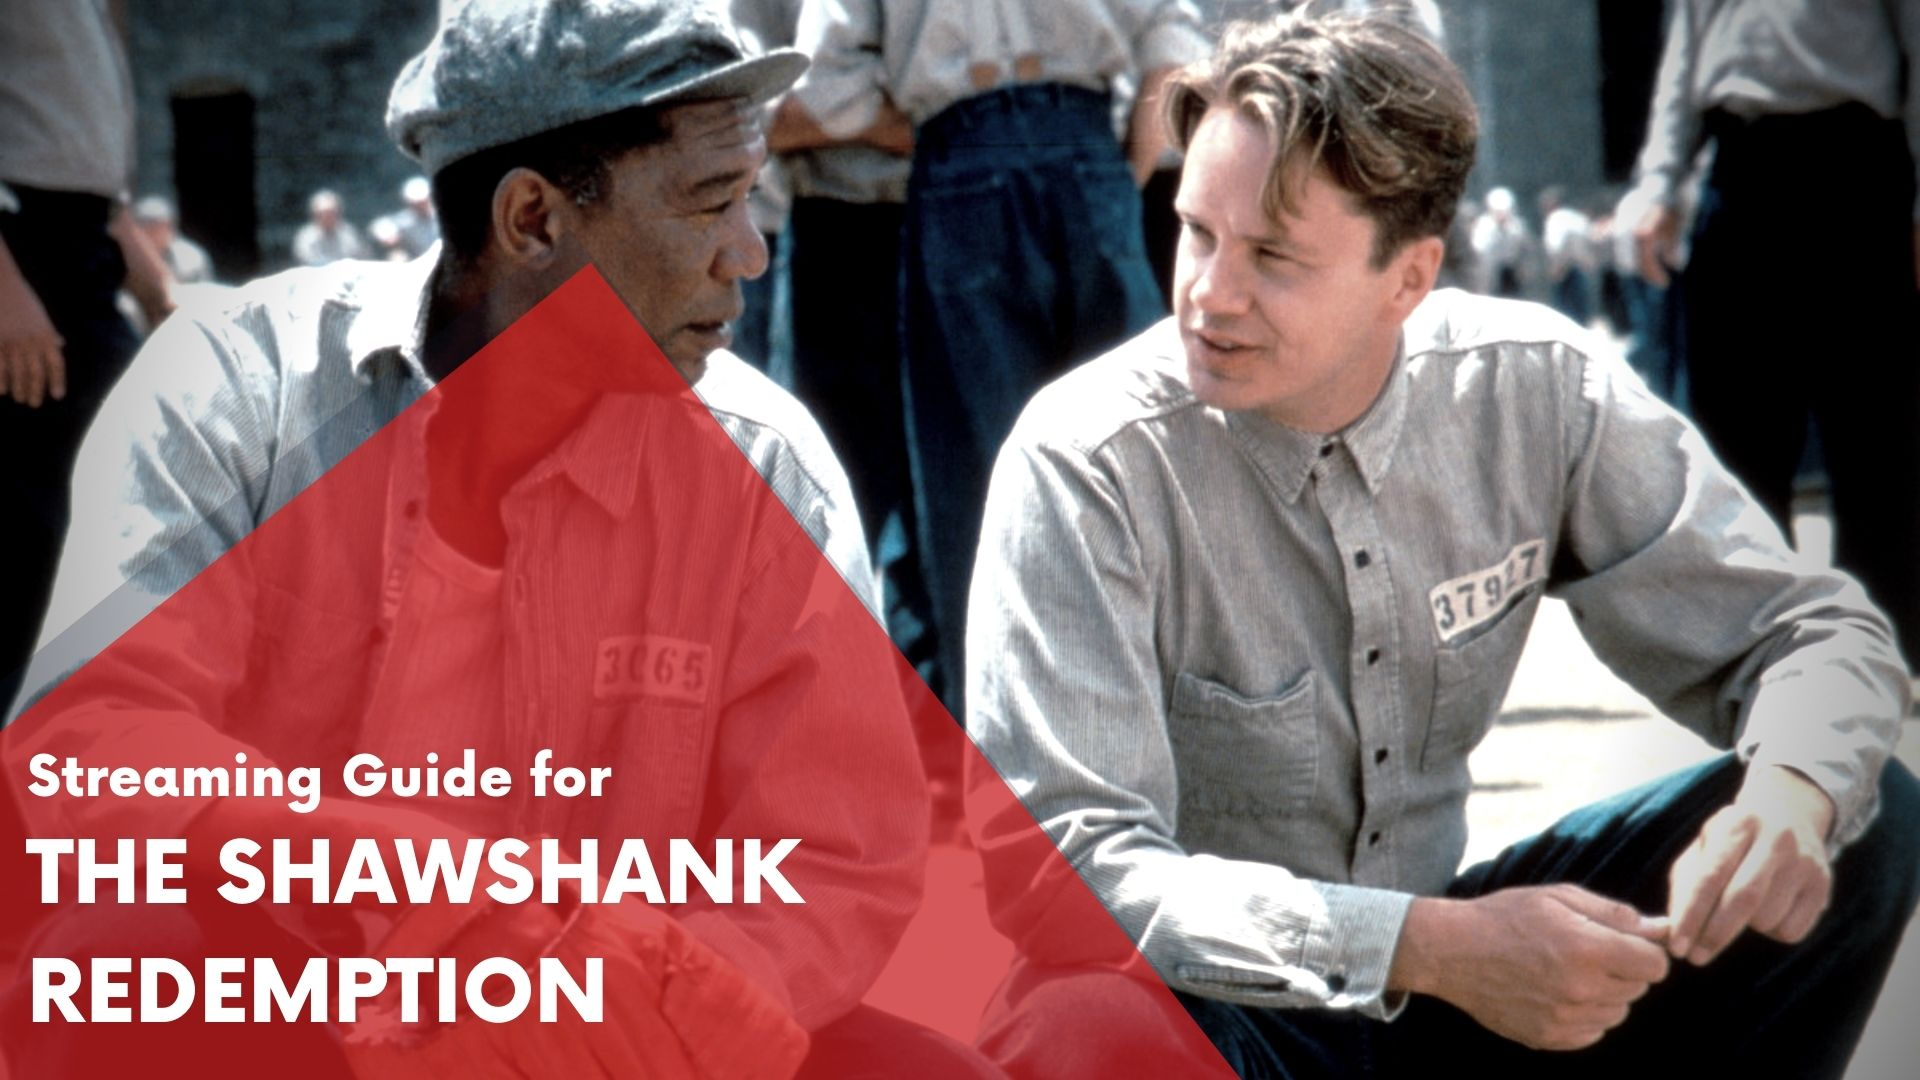 Answering if The-Shawshank-Redemption can be watched online on Hulu